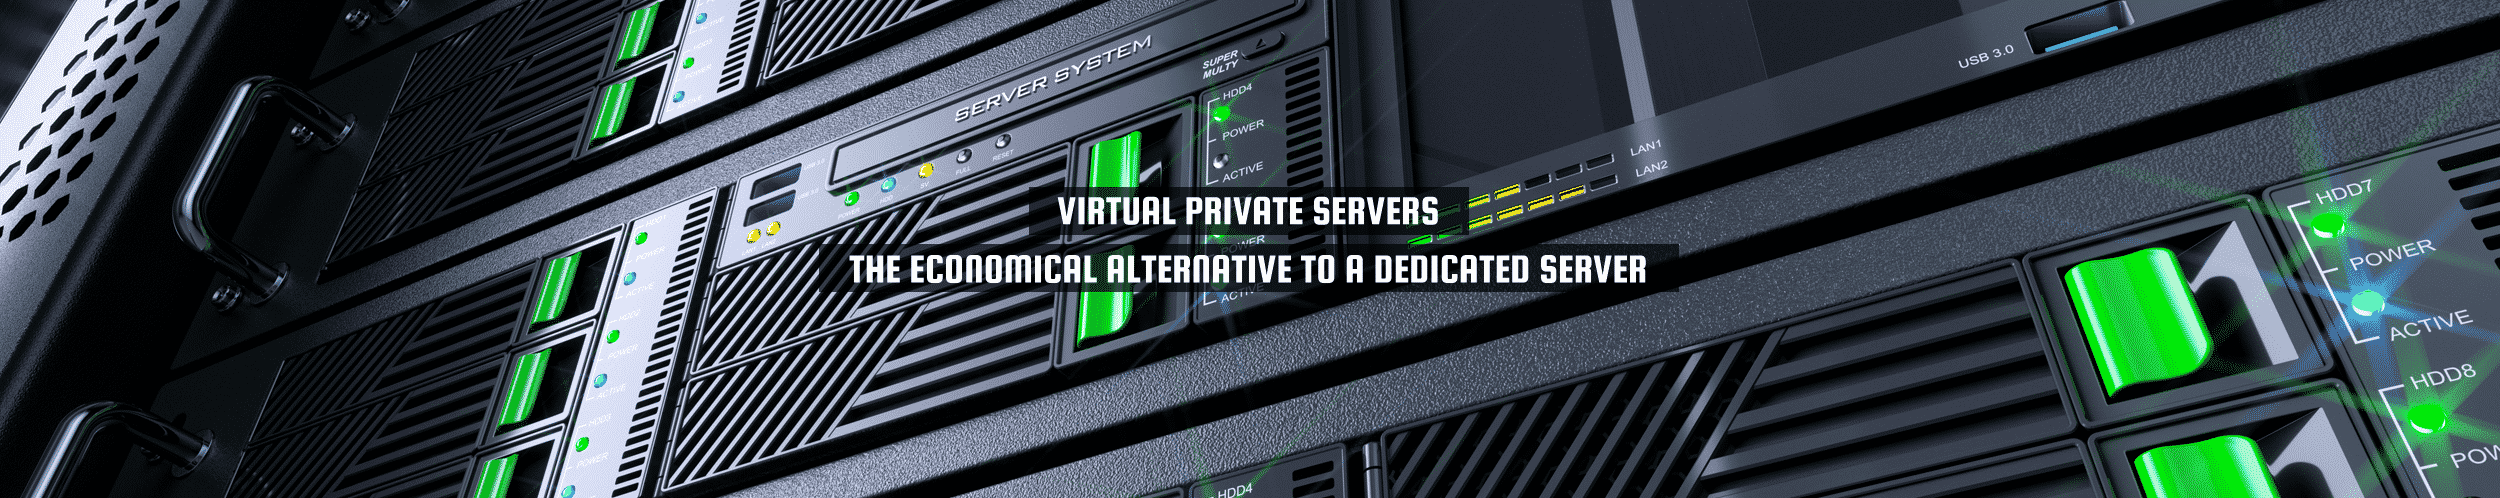 "52Degrees Virtual Hosting - feature image | ""virtuelle private servere - det økonomiske alternativet til en dedikert server"" 